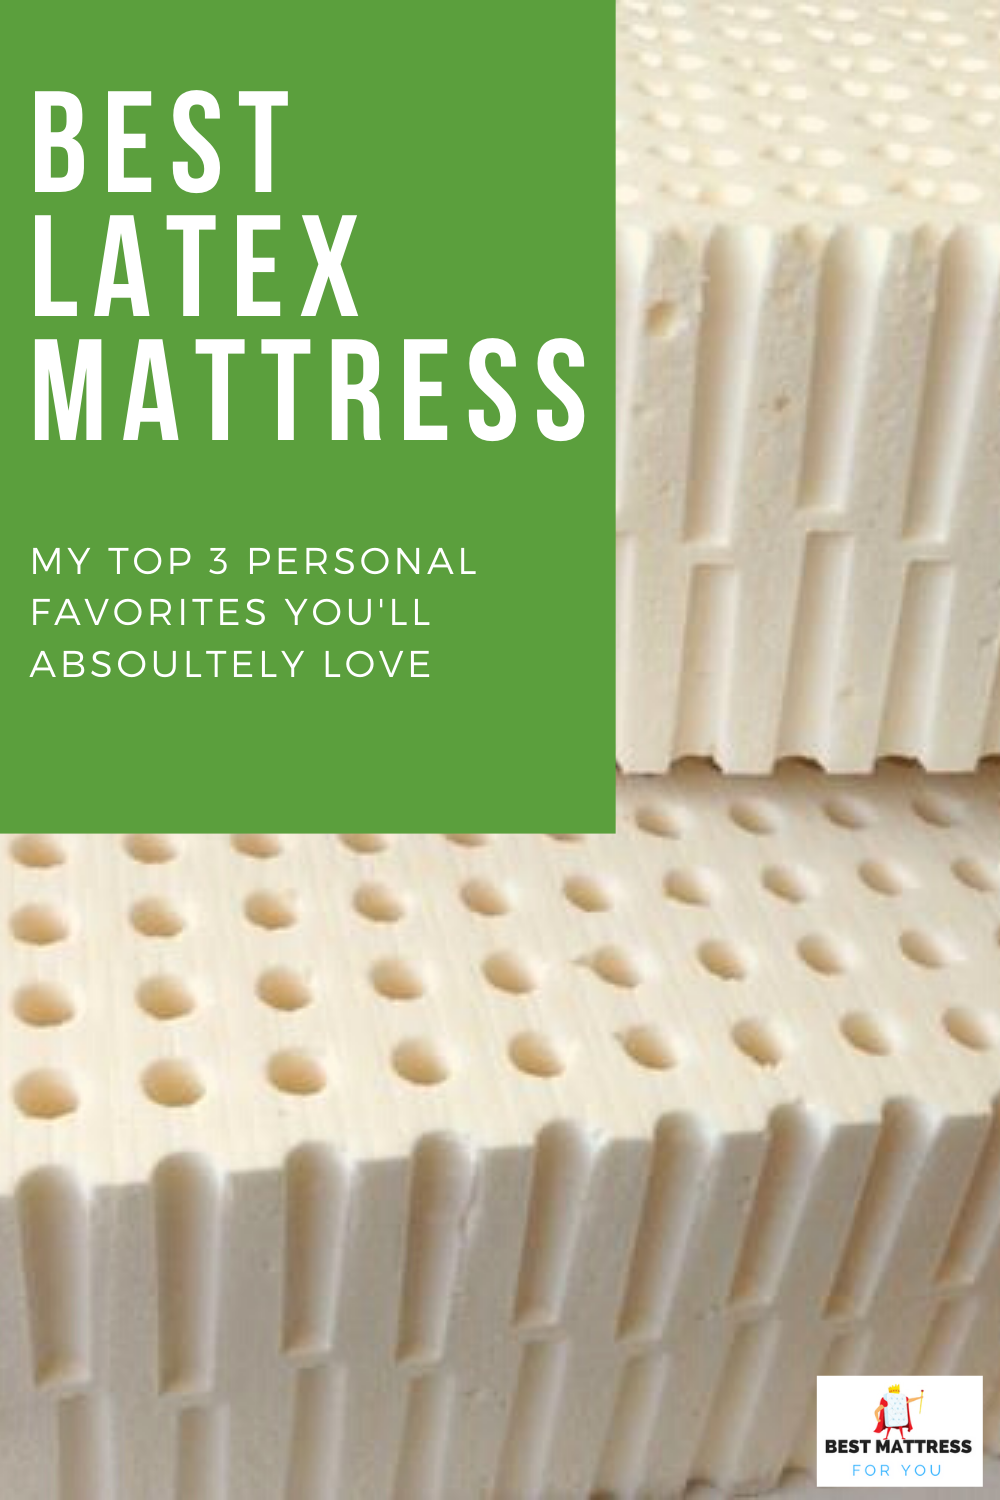 best latex mattress - cover image